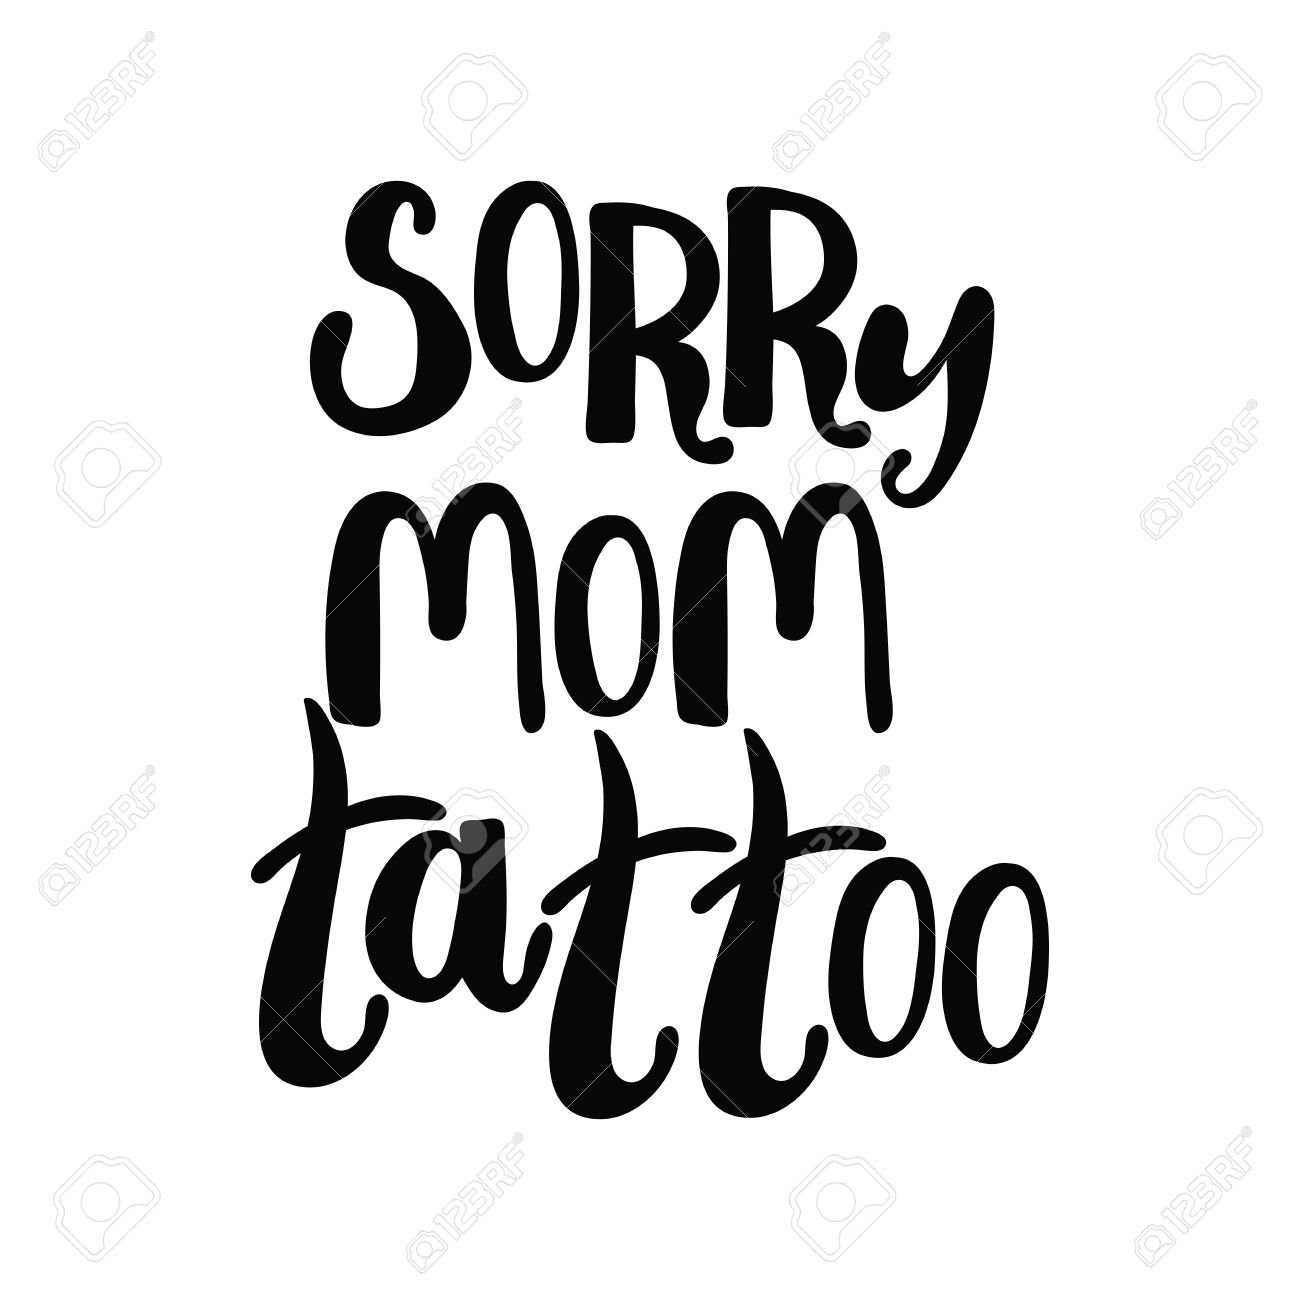 Sorry Mom Tattoo Lettering Isolated Object On White Background 1300x1300